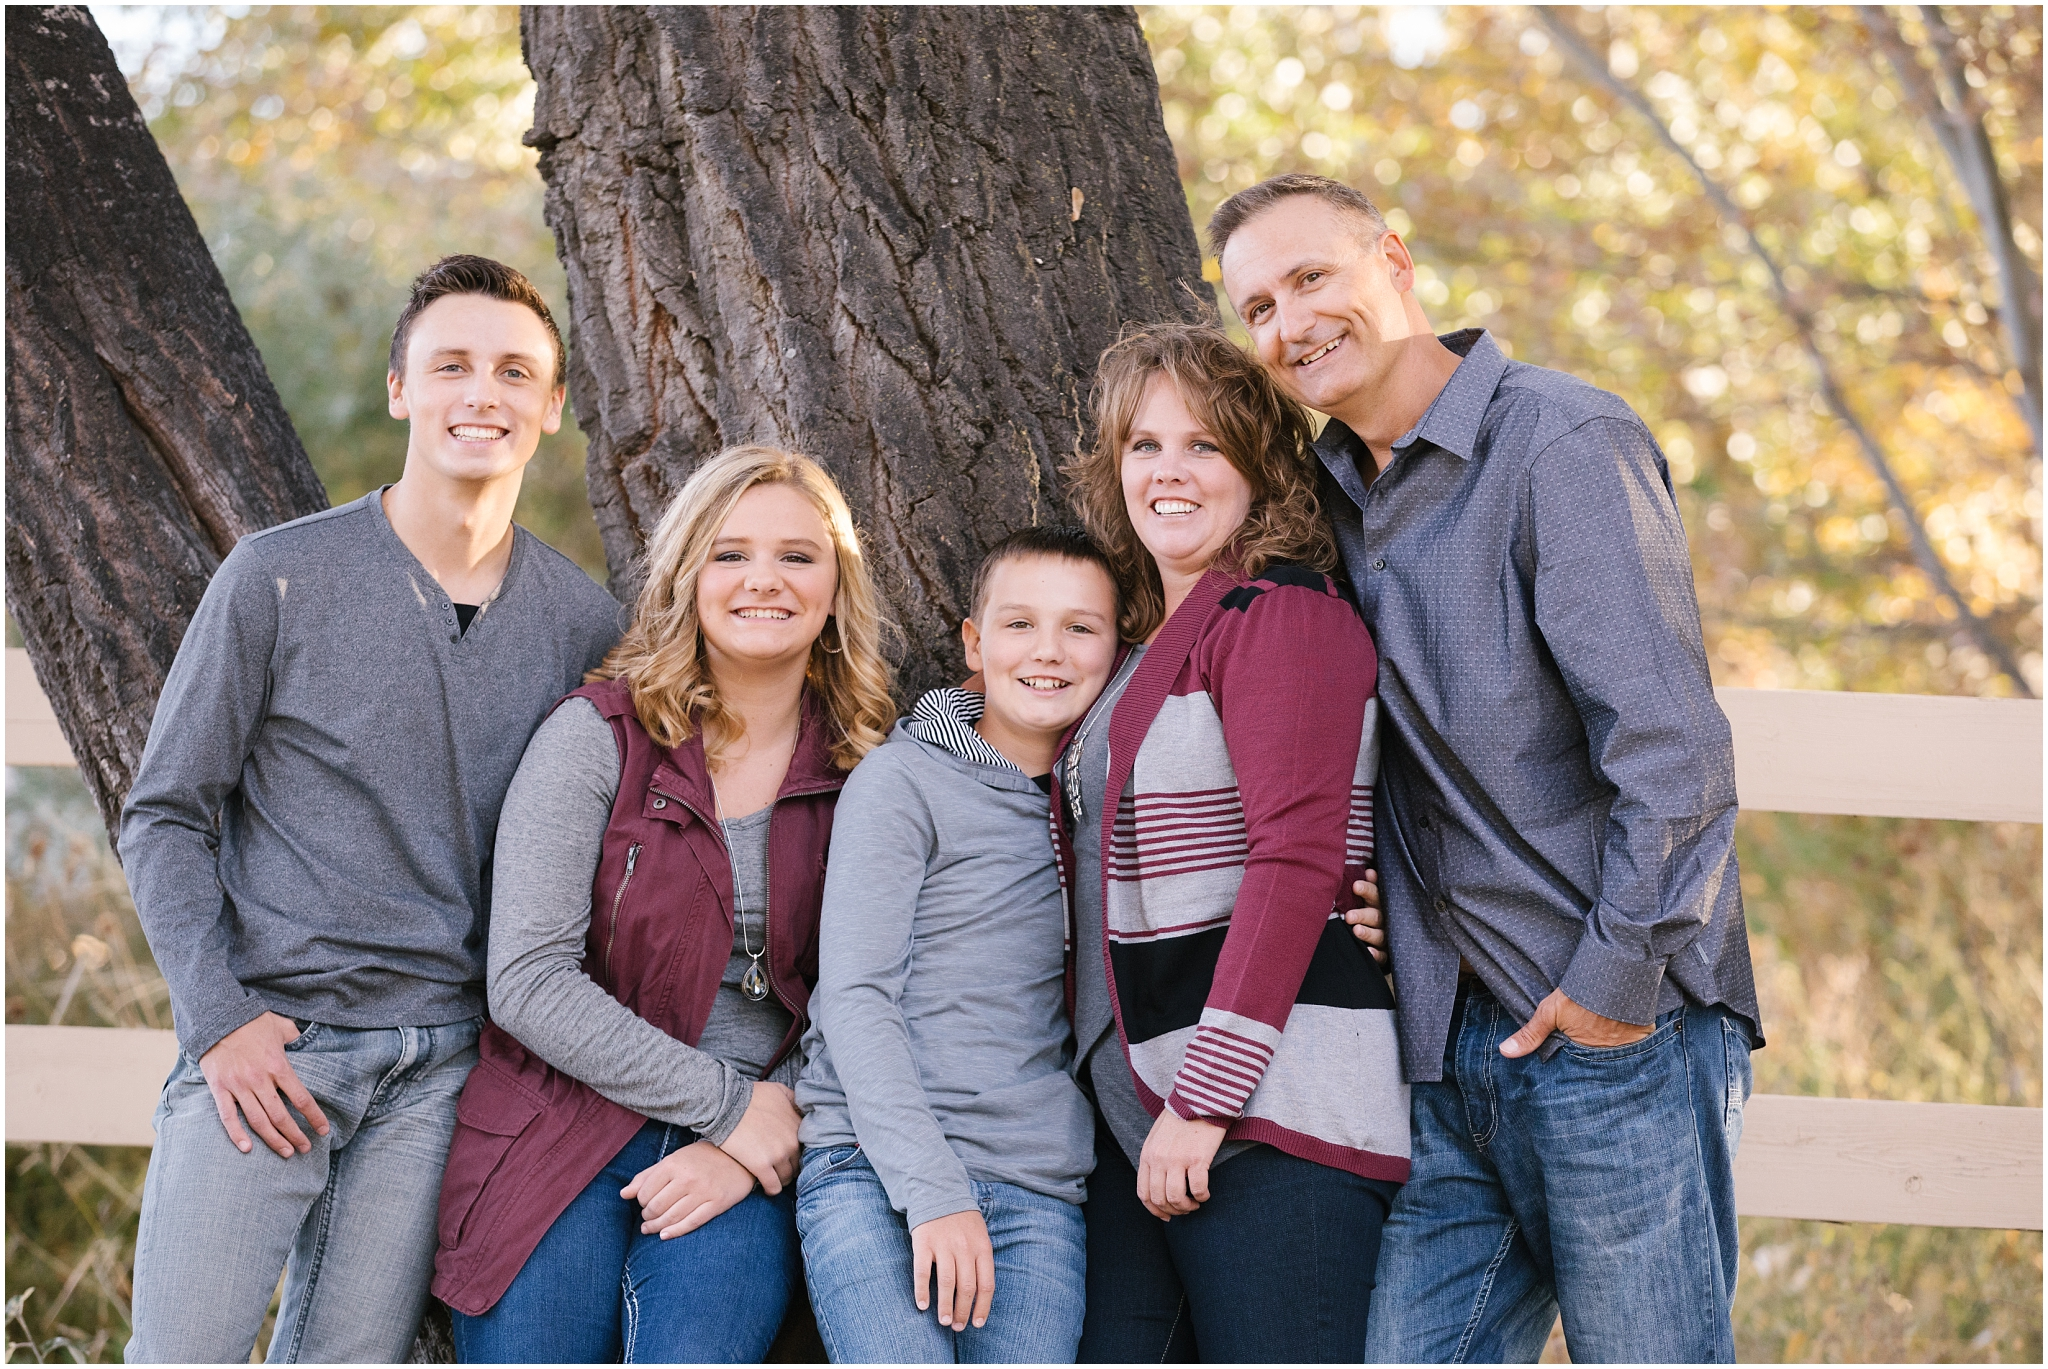 Fielding-20_Lizzie-B-Imagery-Utah-Family-Photographer-Central-Utah-Park-City-Salt-Lake-City.jpg